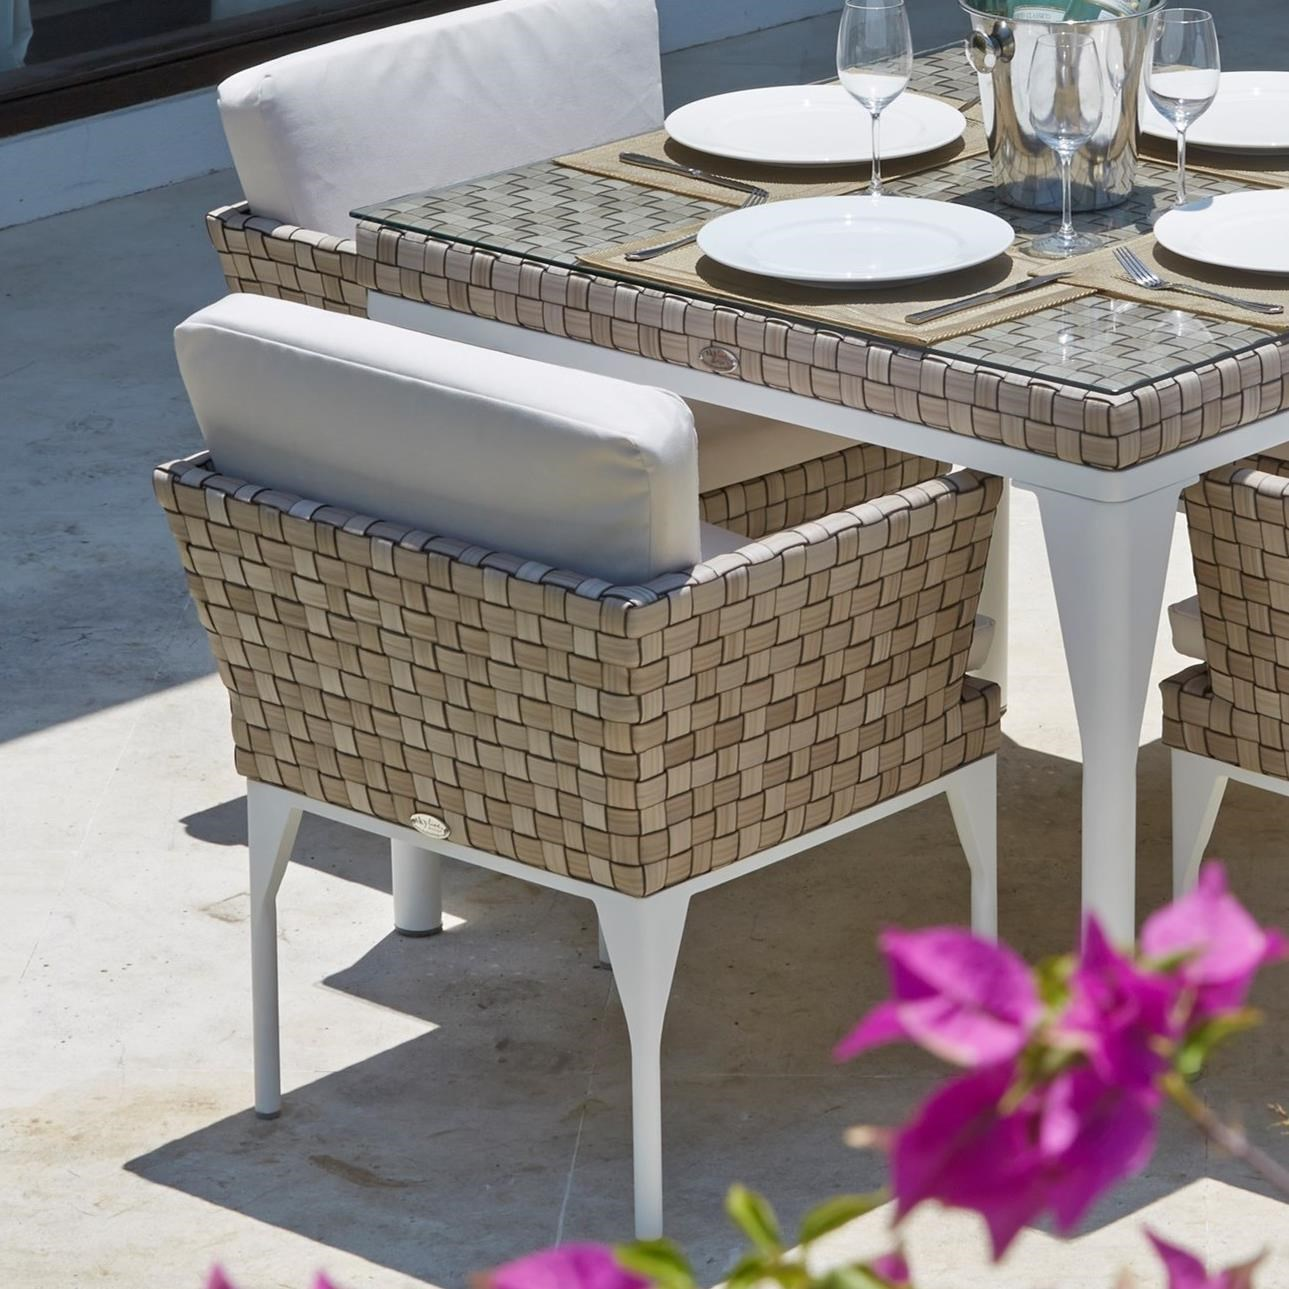 Skyline Design BRAFTA Outdoor Dining Armchair   Item Number: 22938+C